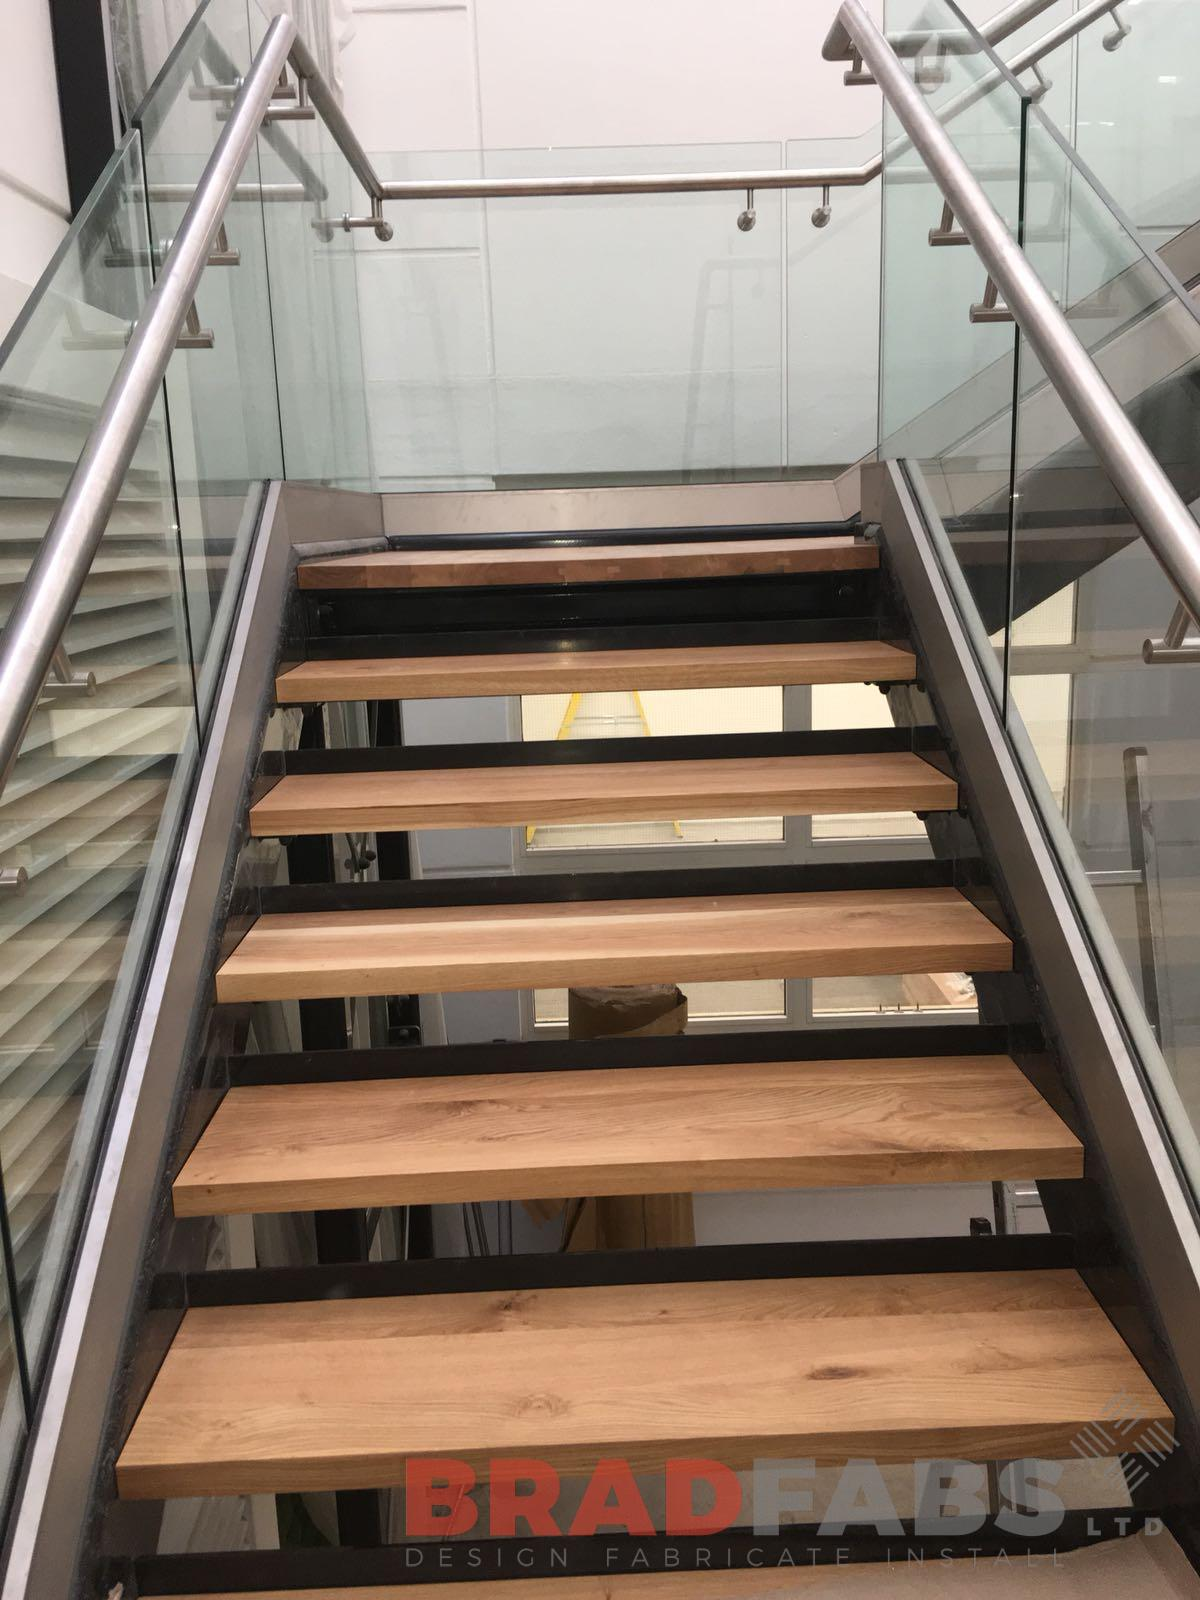 Commercial staircase with infinity glass balustrade and stainless steel handrail